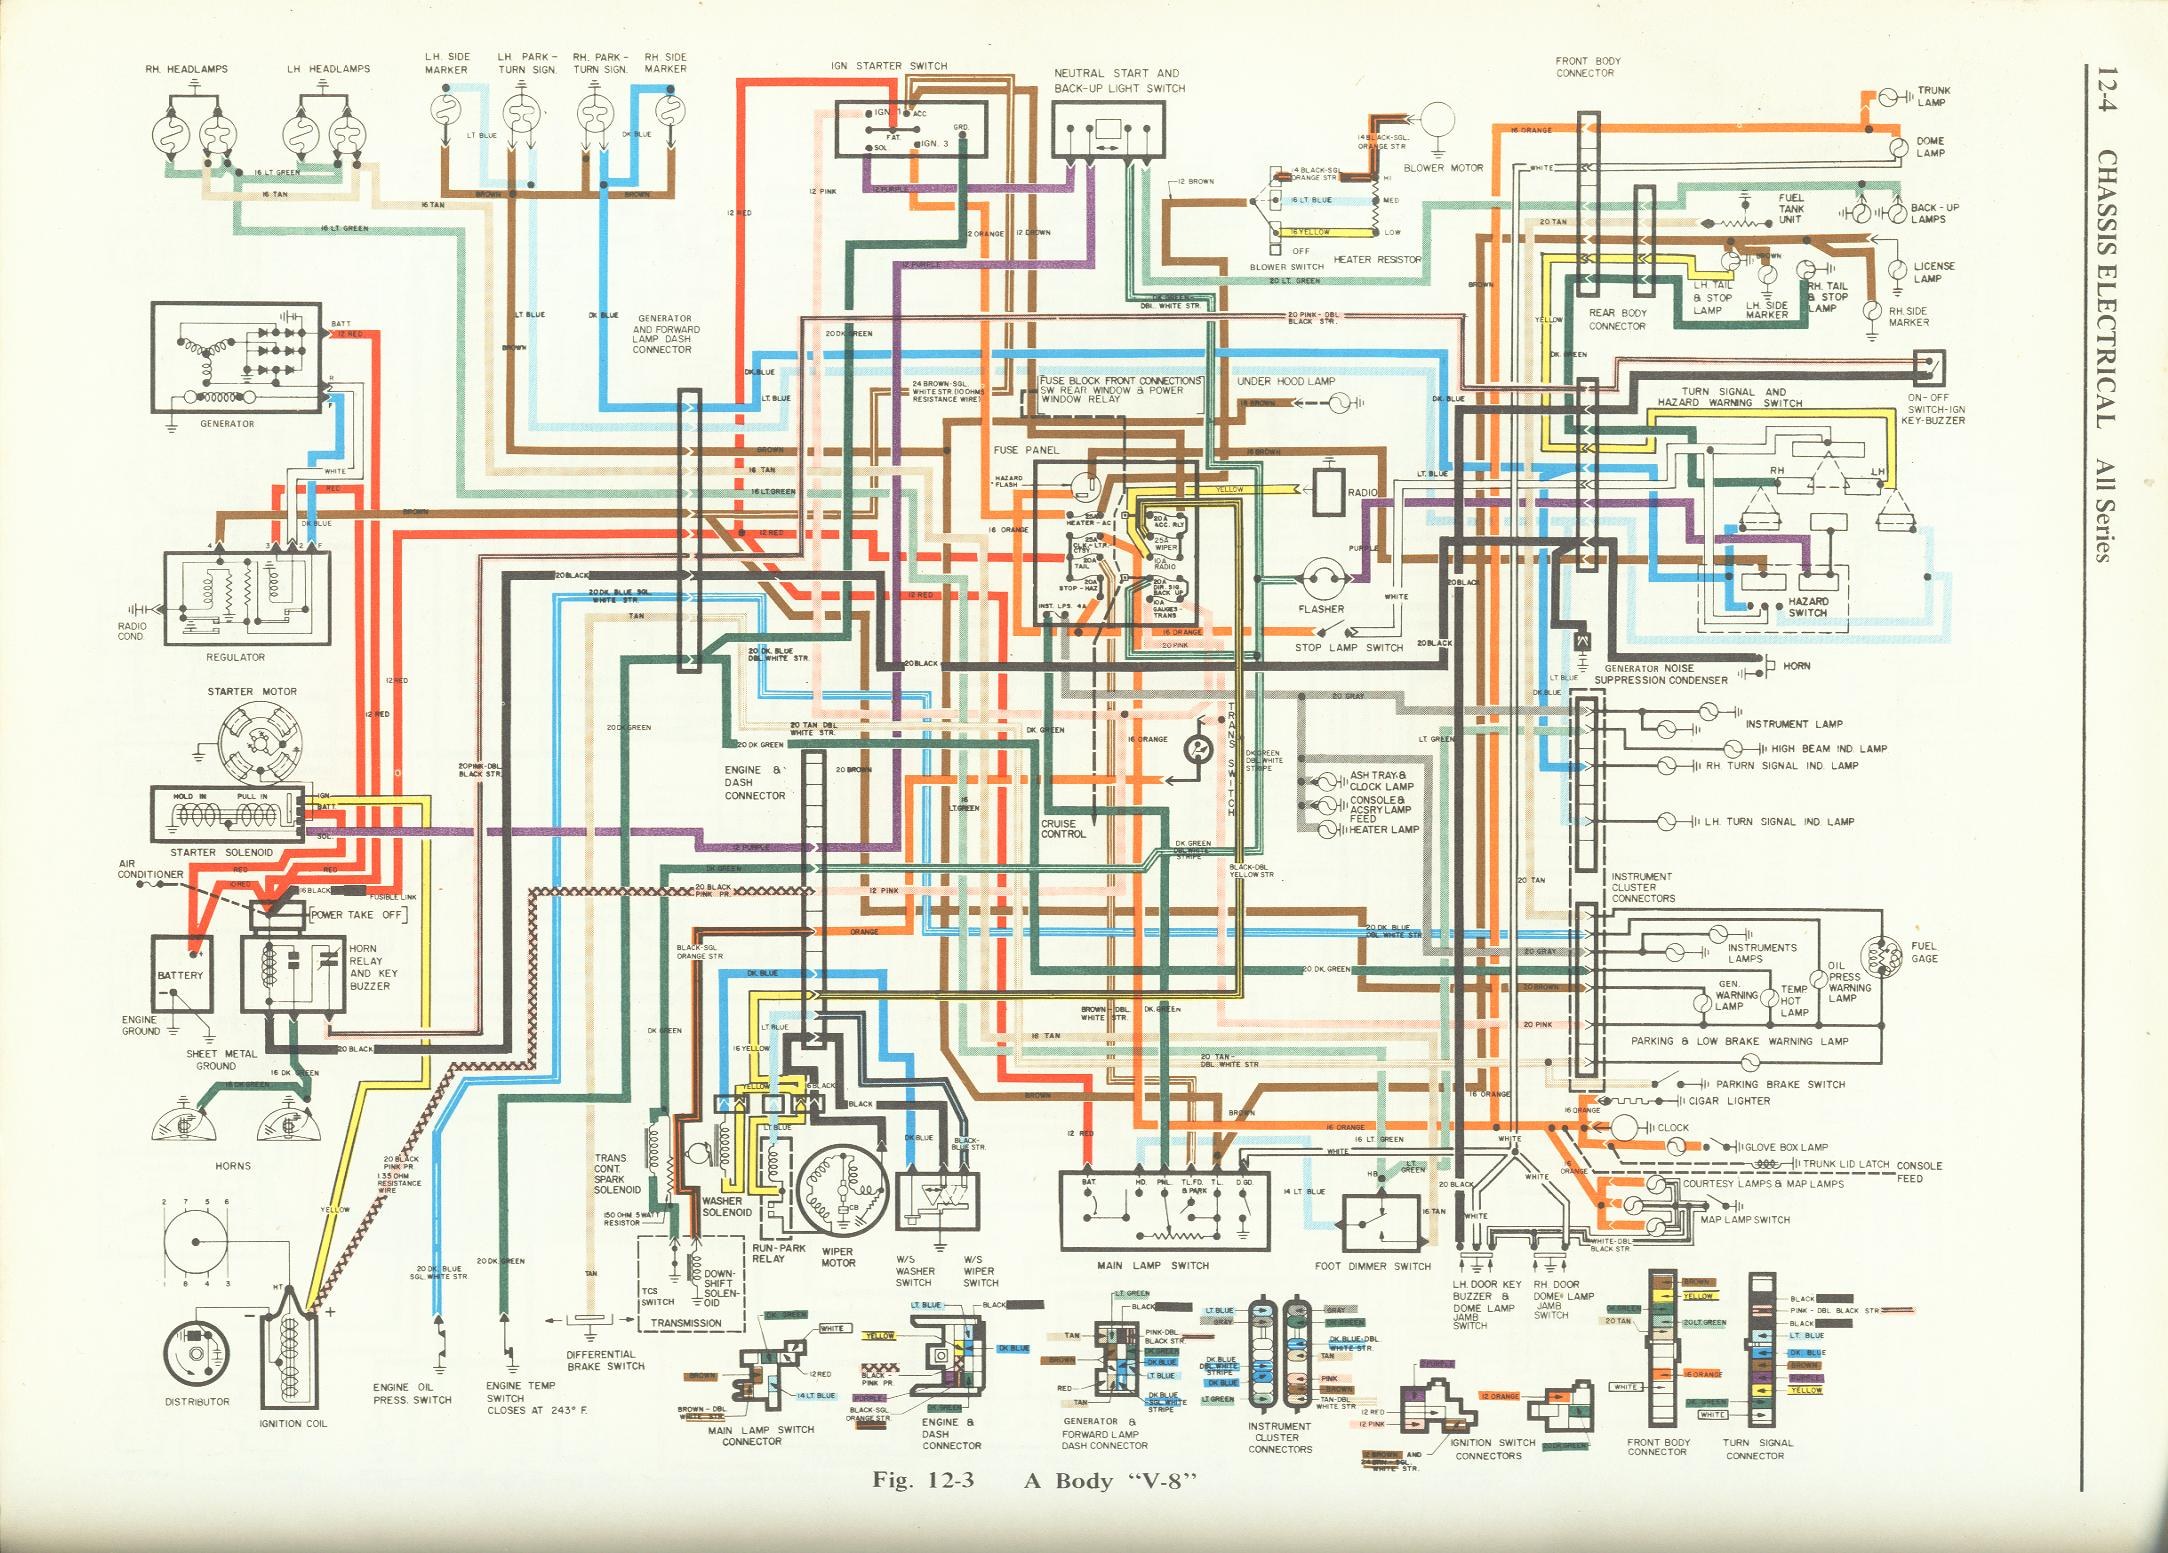 ☑ 1968 Oldsmobile Cutlass Wiring Diagram HD Quality ☑ marc-diagram.radd.frDiagram Database - Radd